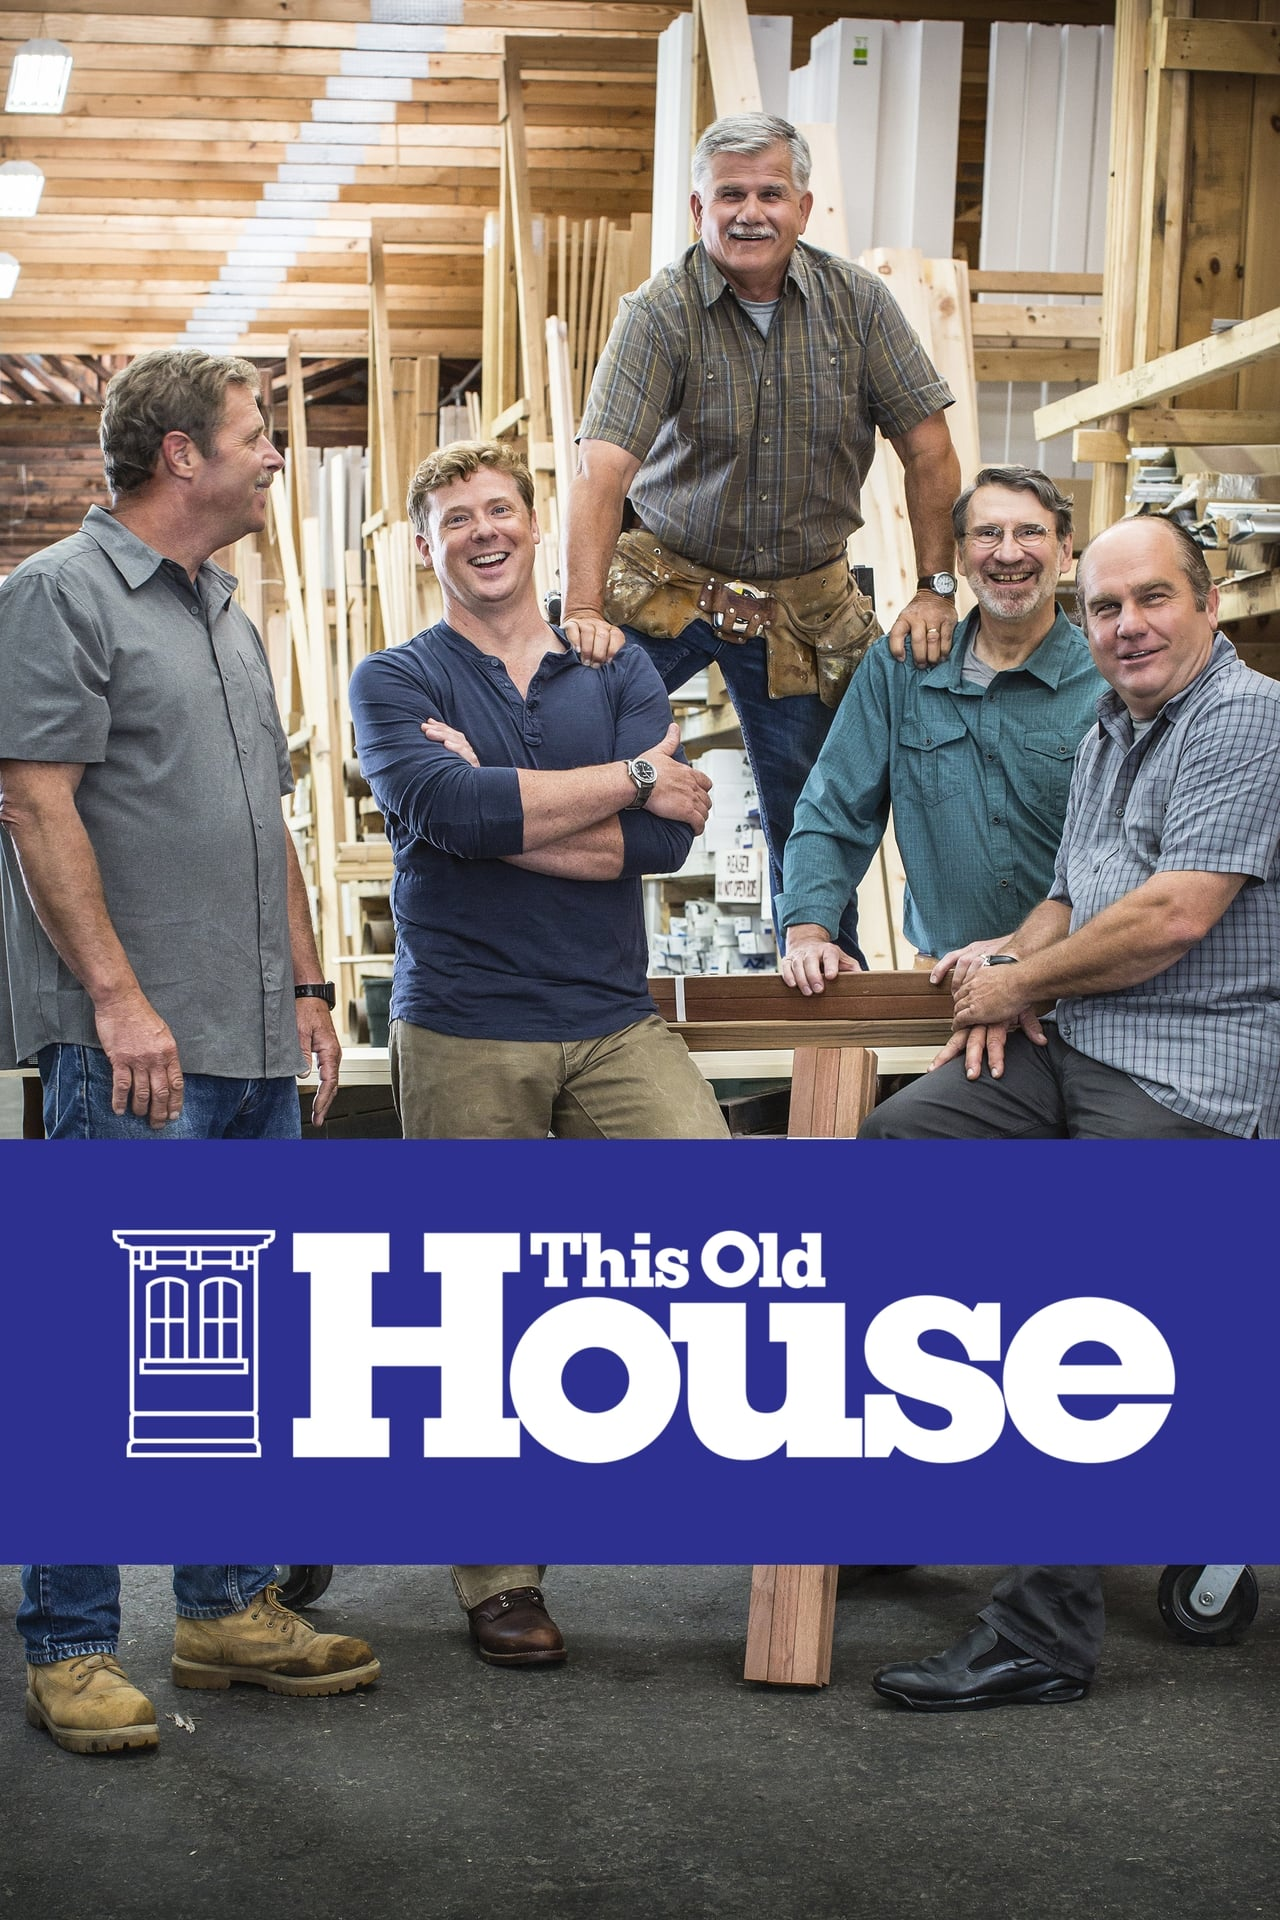 This Old House Season 17 gomovies